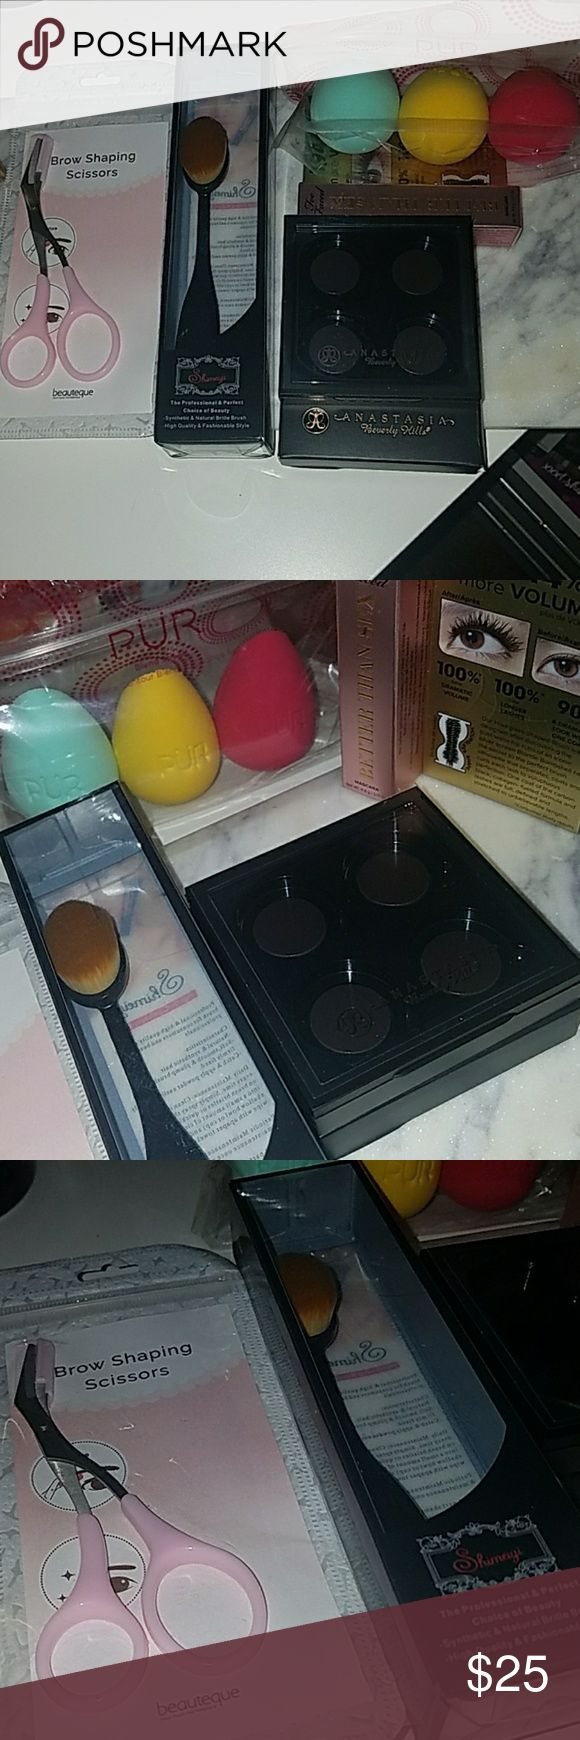 Pur sponges foundation brush ABH empty palette All new never used 3 pur make up sponges, small oval foundation, deluxe size too faced better than sex mascara, empty Anastasia Beverly Hills empty quad and brow shaping scissors.   Please check out my closet.   BUNDLE AND SAVE 😄 Pur Makeup Brushes & Tools